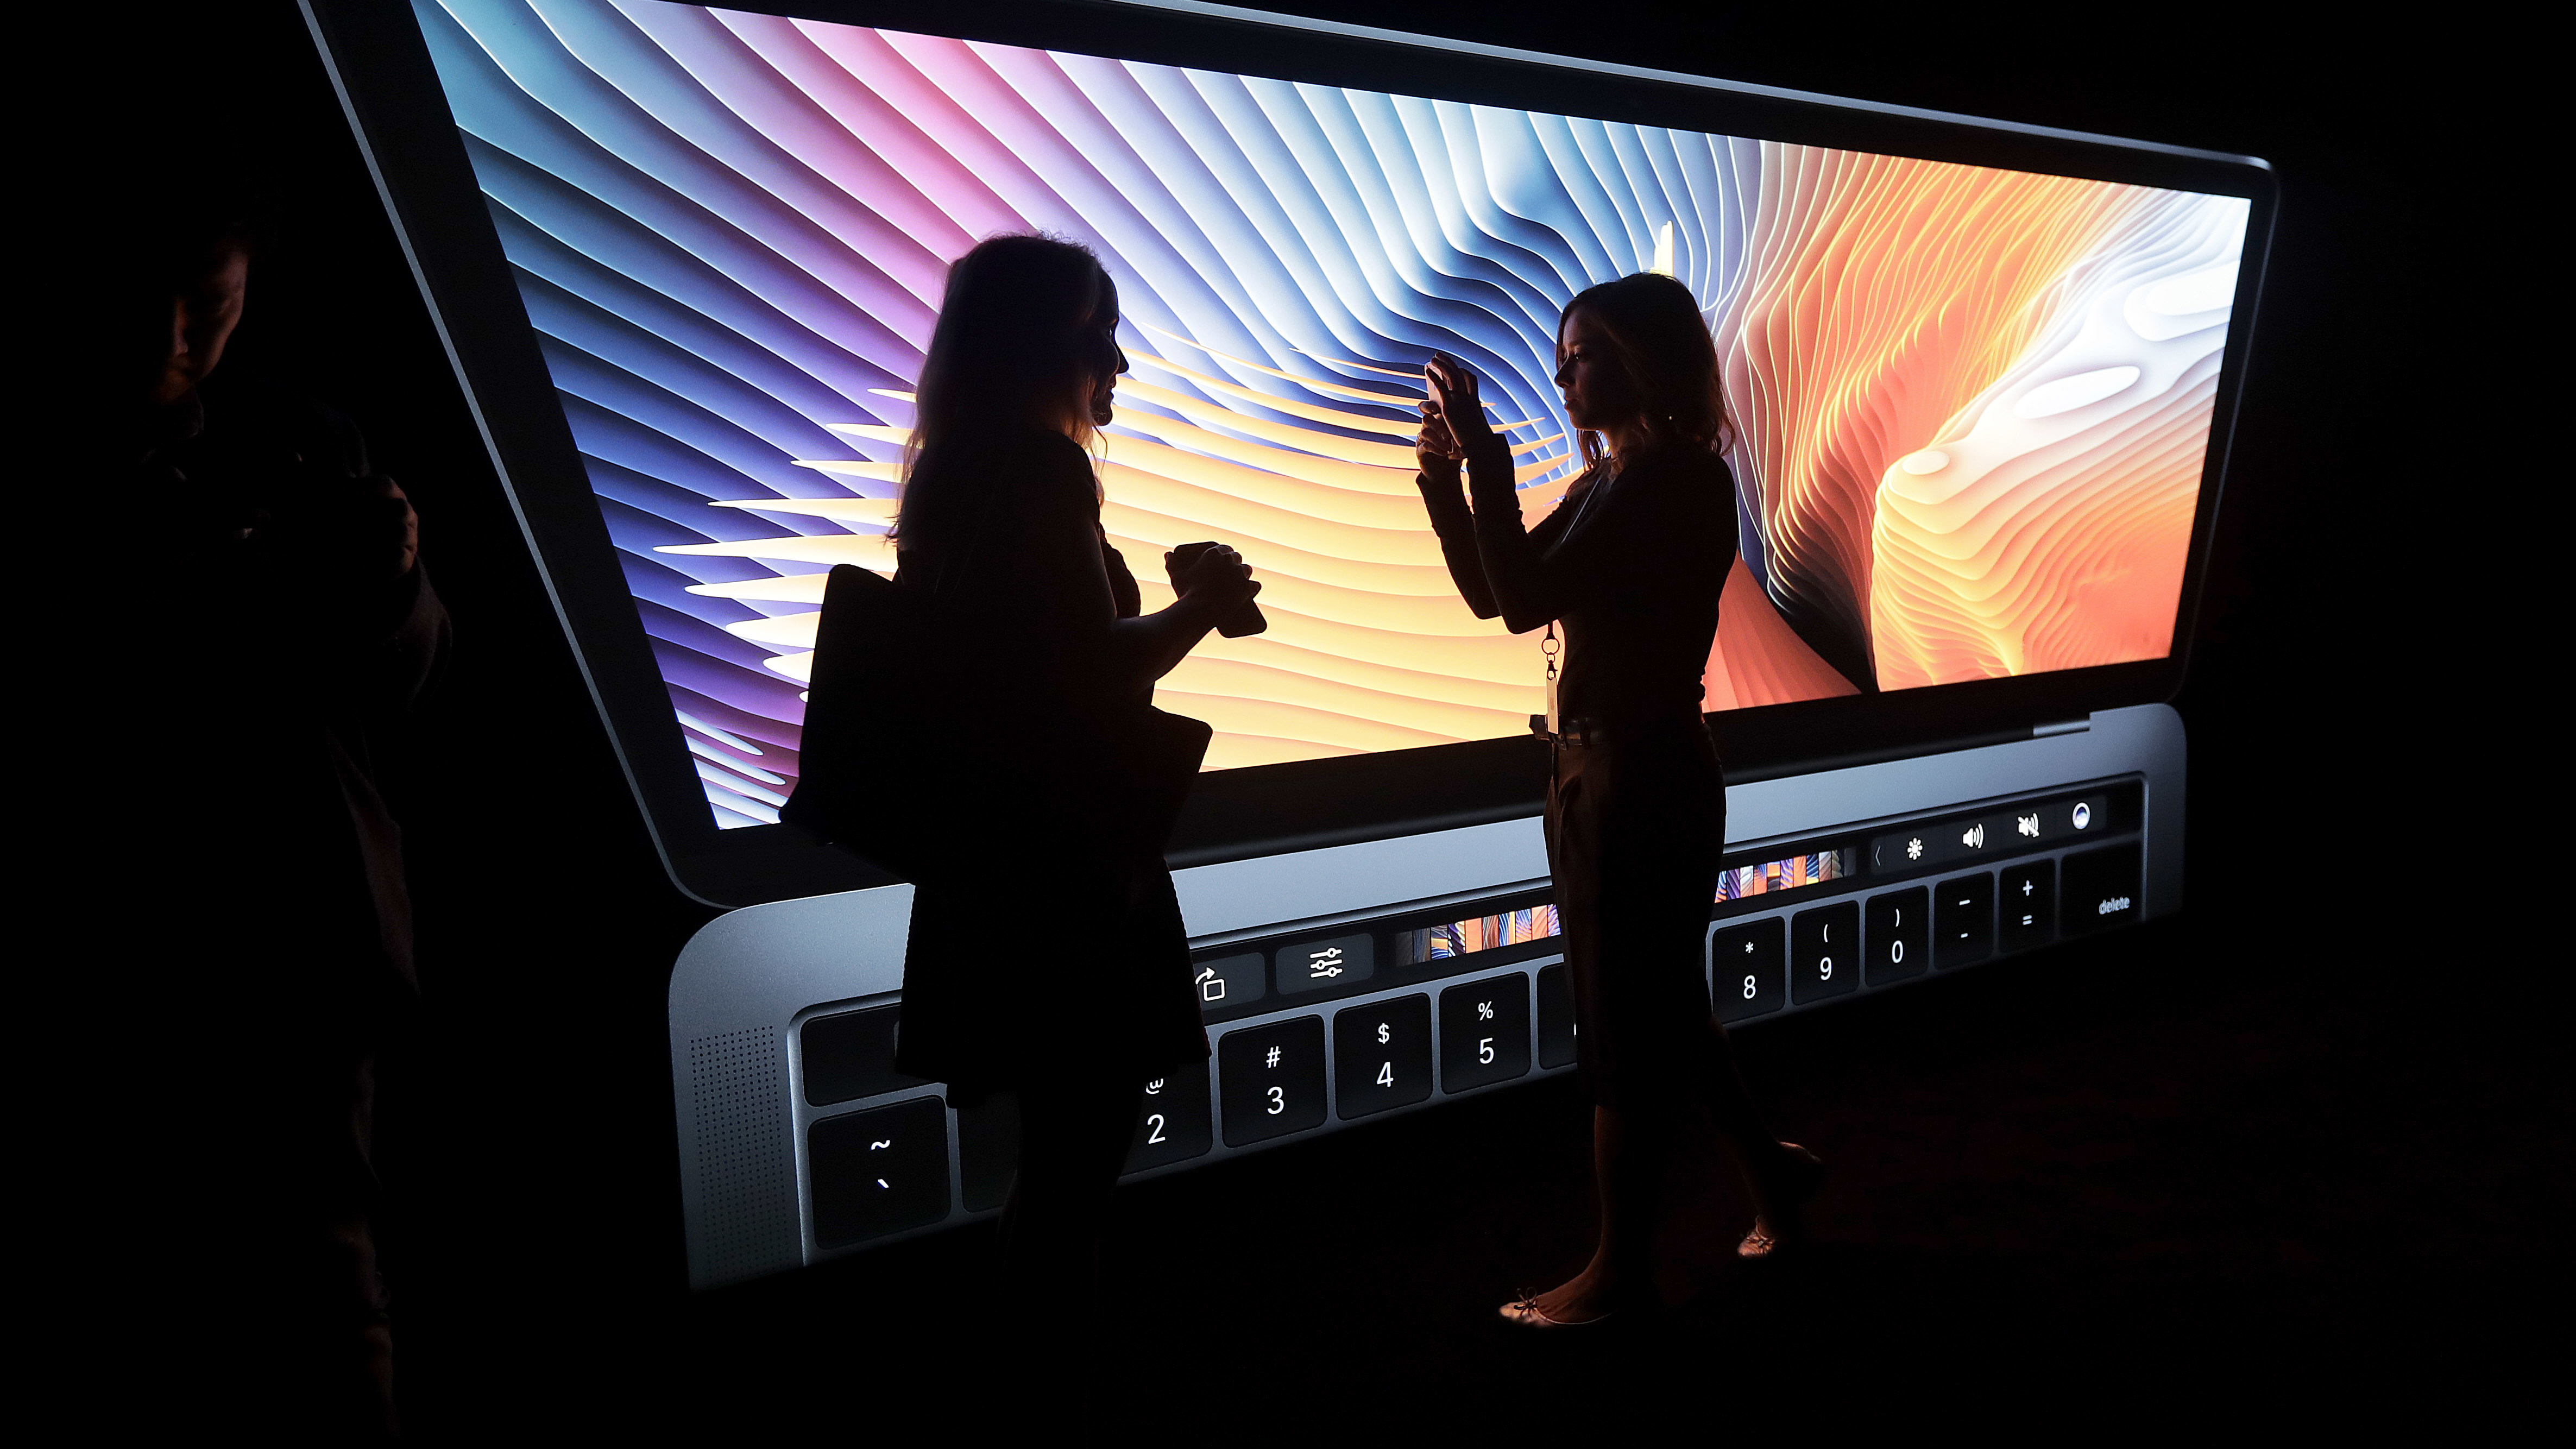 Women take photos in front of a large photo displayed of a MacBook computer in a demo room following the announcement of new products at Apple headquarters Thursday, Oct. 27, 2016, in Cupertino, Calif. (AP Photo/Marcio Jose Sanchez)